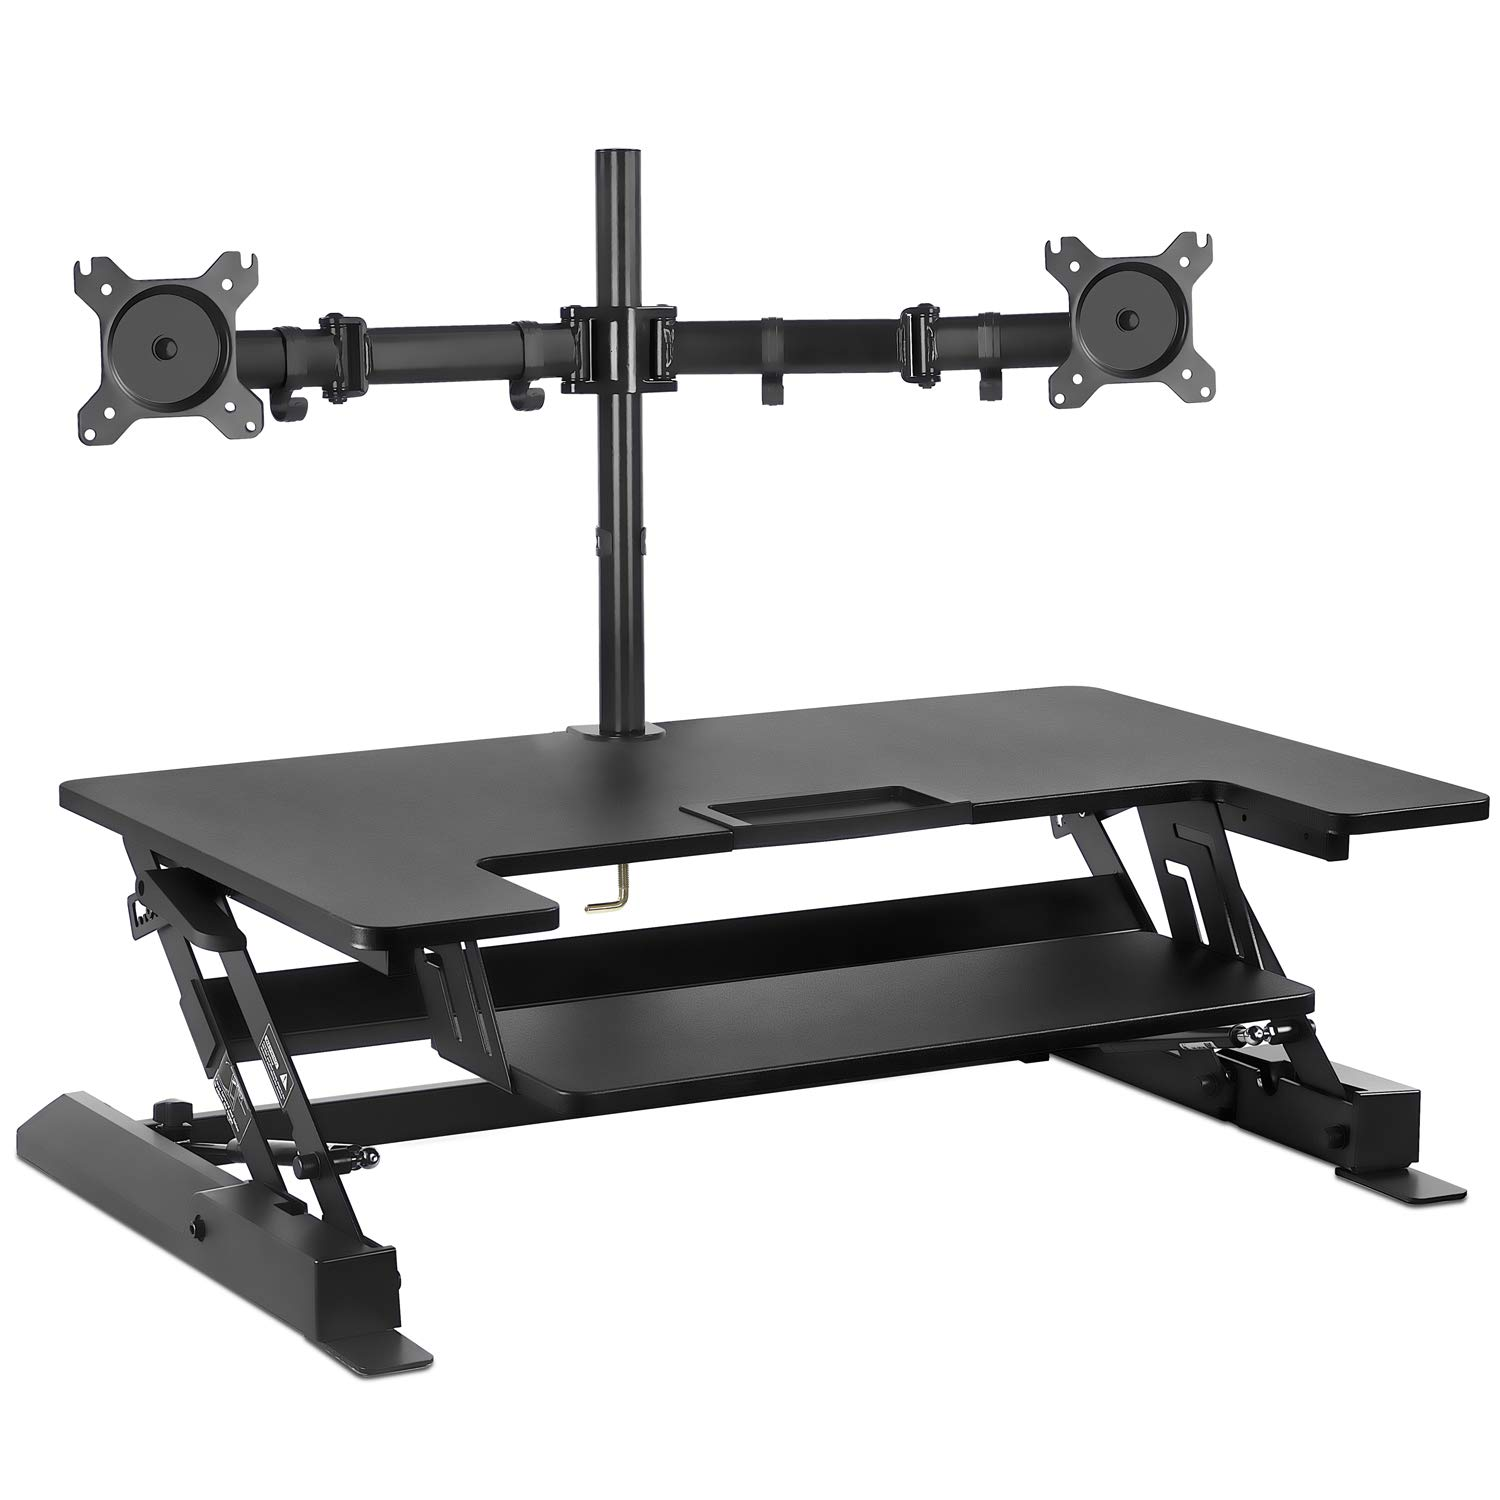 Mount-It! Standing Desk Converter with Bonus Dual Monitor Mount Included - Height Adjustable Stand Up Desk - Wide 36 Inch Sit Stand Workstation with Gas Spring Lift- Black (MI-7934) by Mount-It!